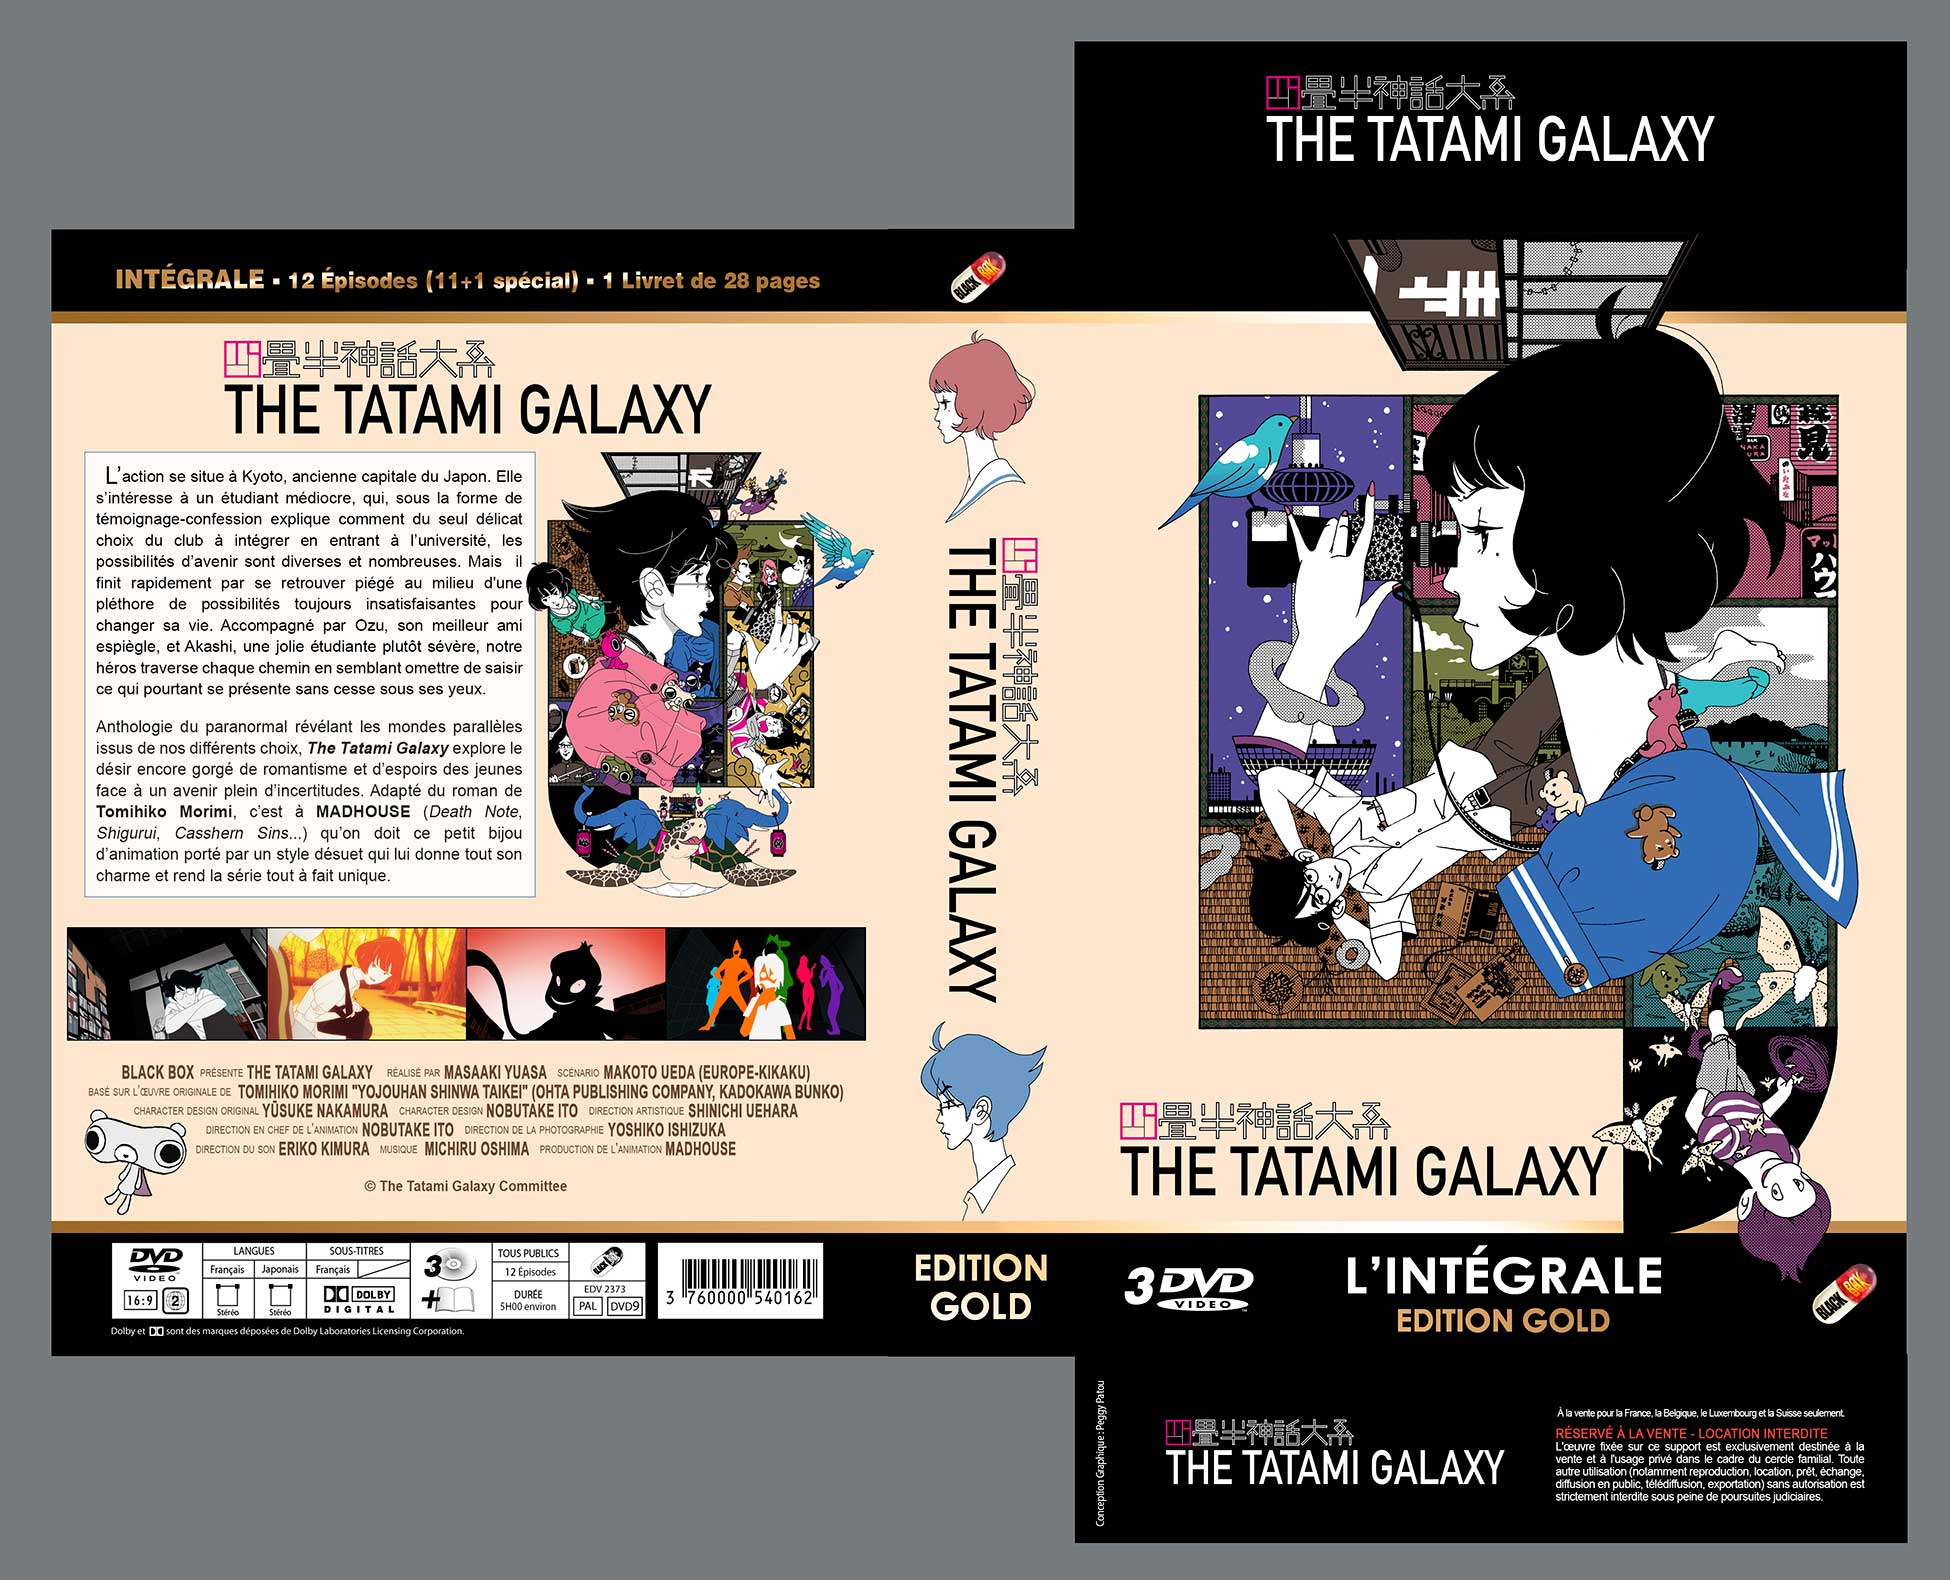 Regreny Alexandre On Twitter The Tatami Galaxy 四畳半神話